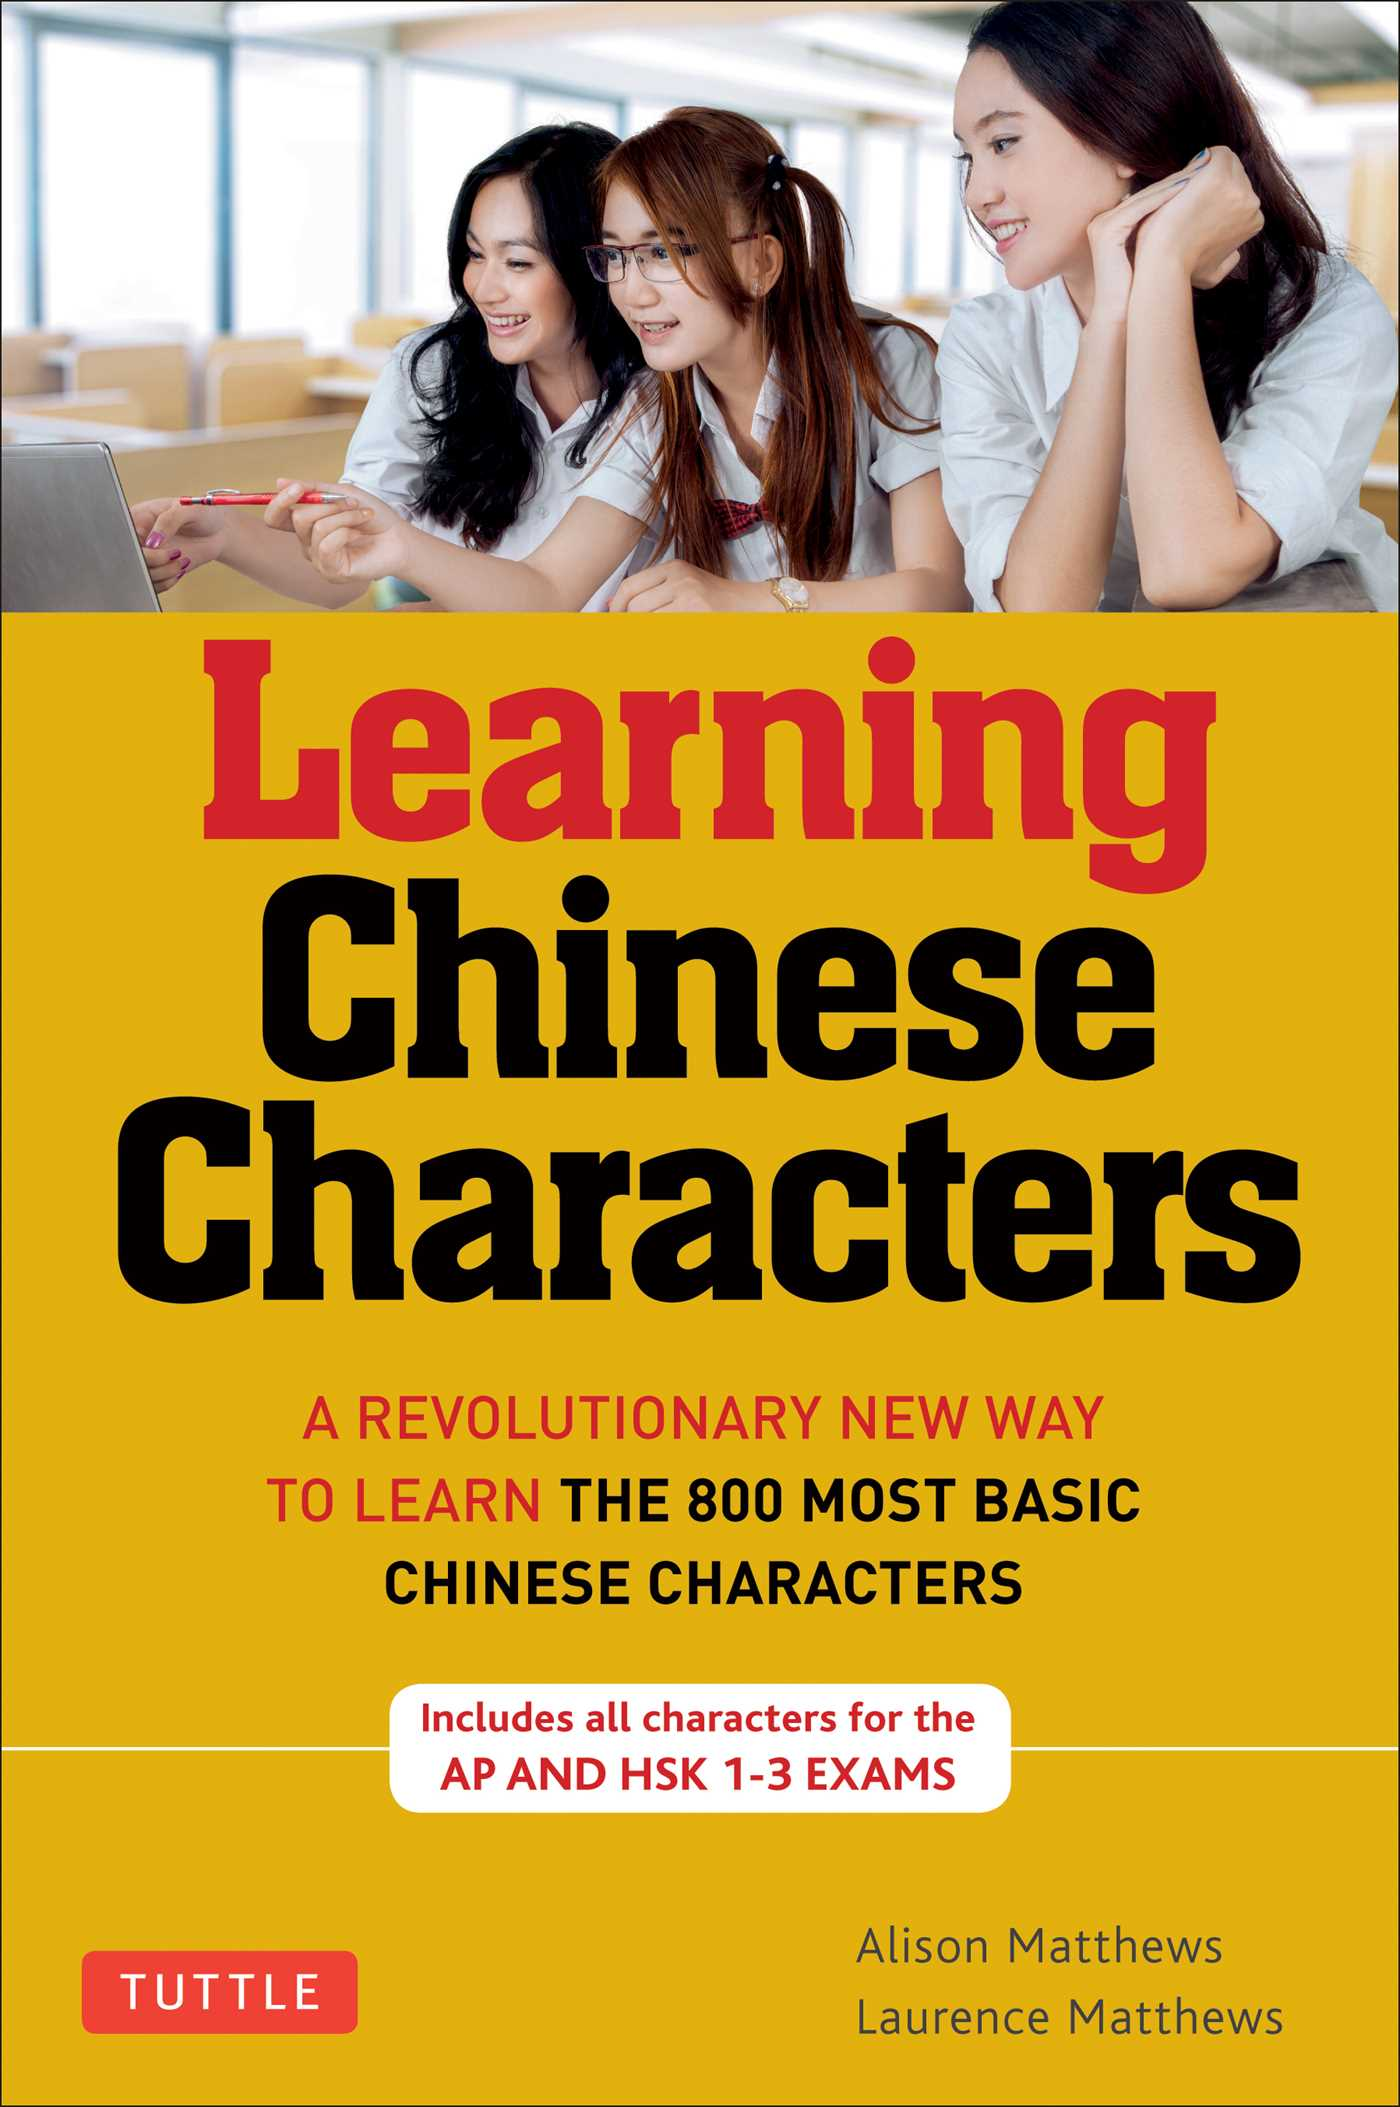 Tuttle-learning-chinese-characters-9780804838160_hr